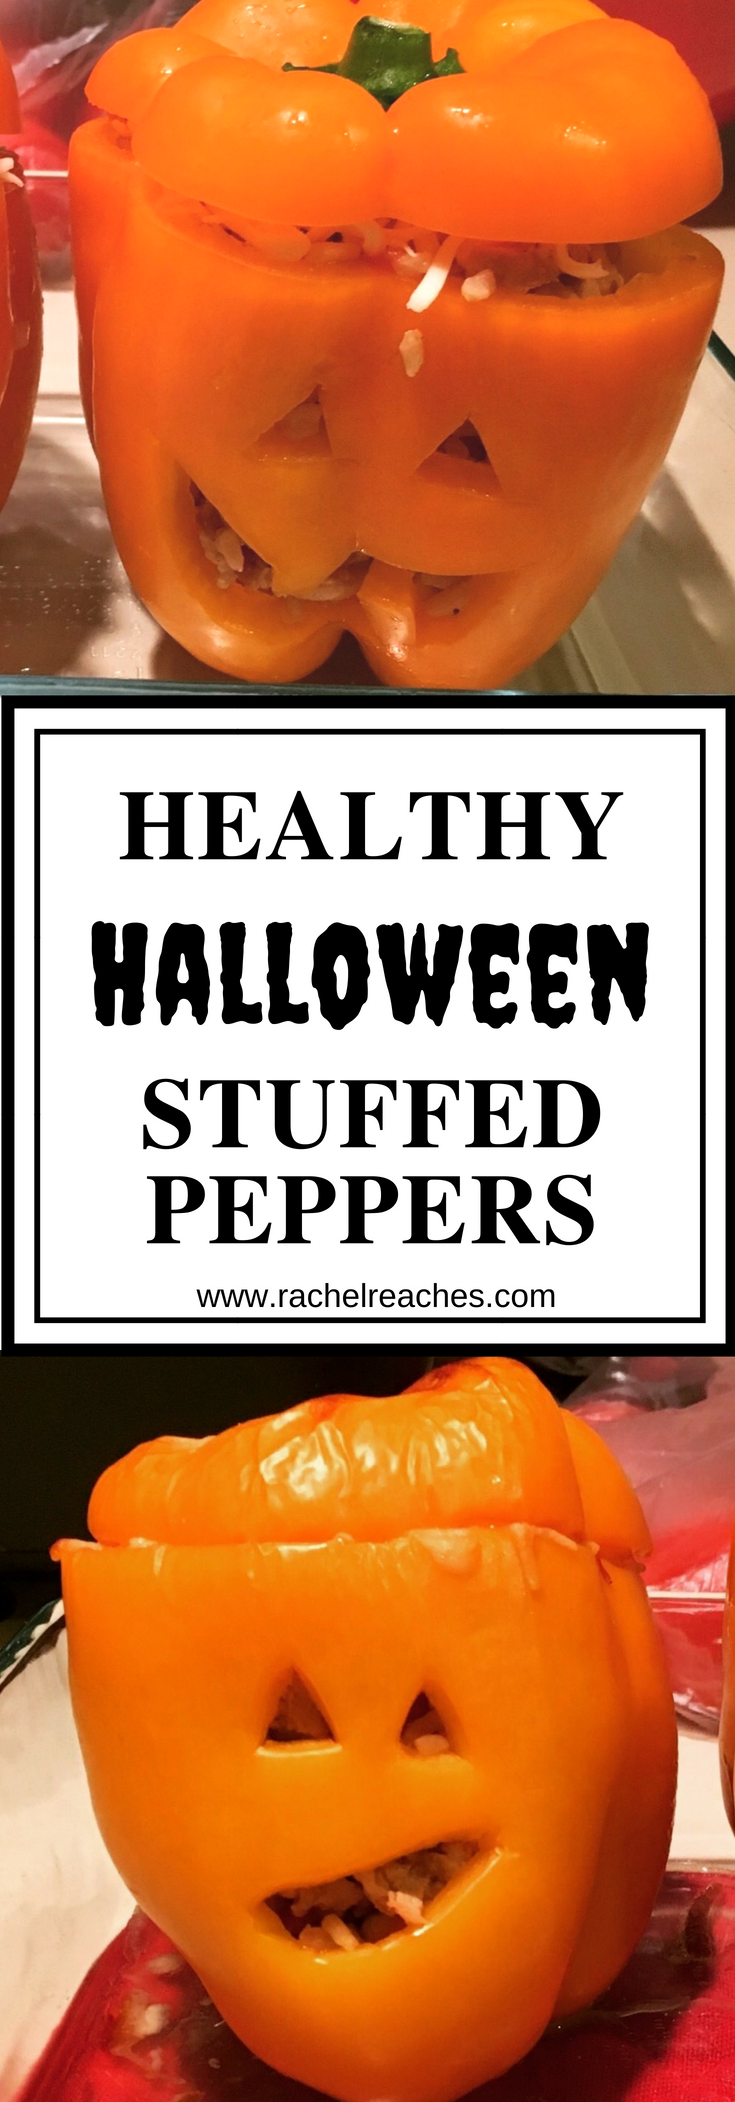 Halloween Stuffed Peppers Pin - Healthy Eating.png